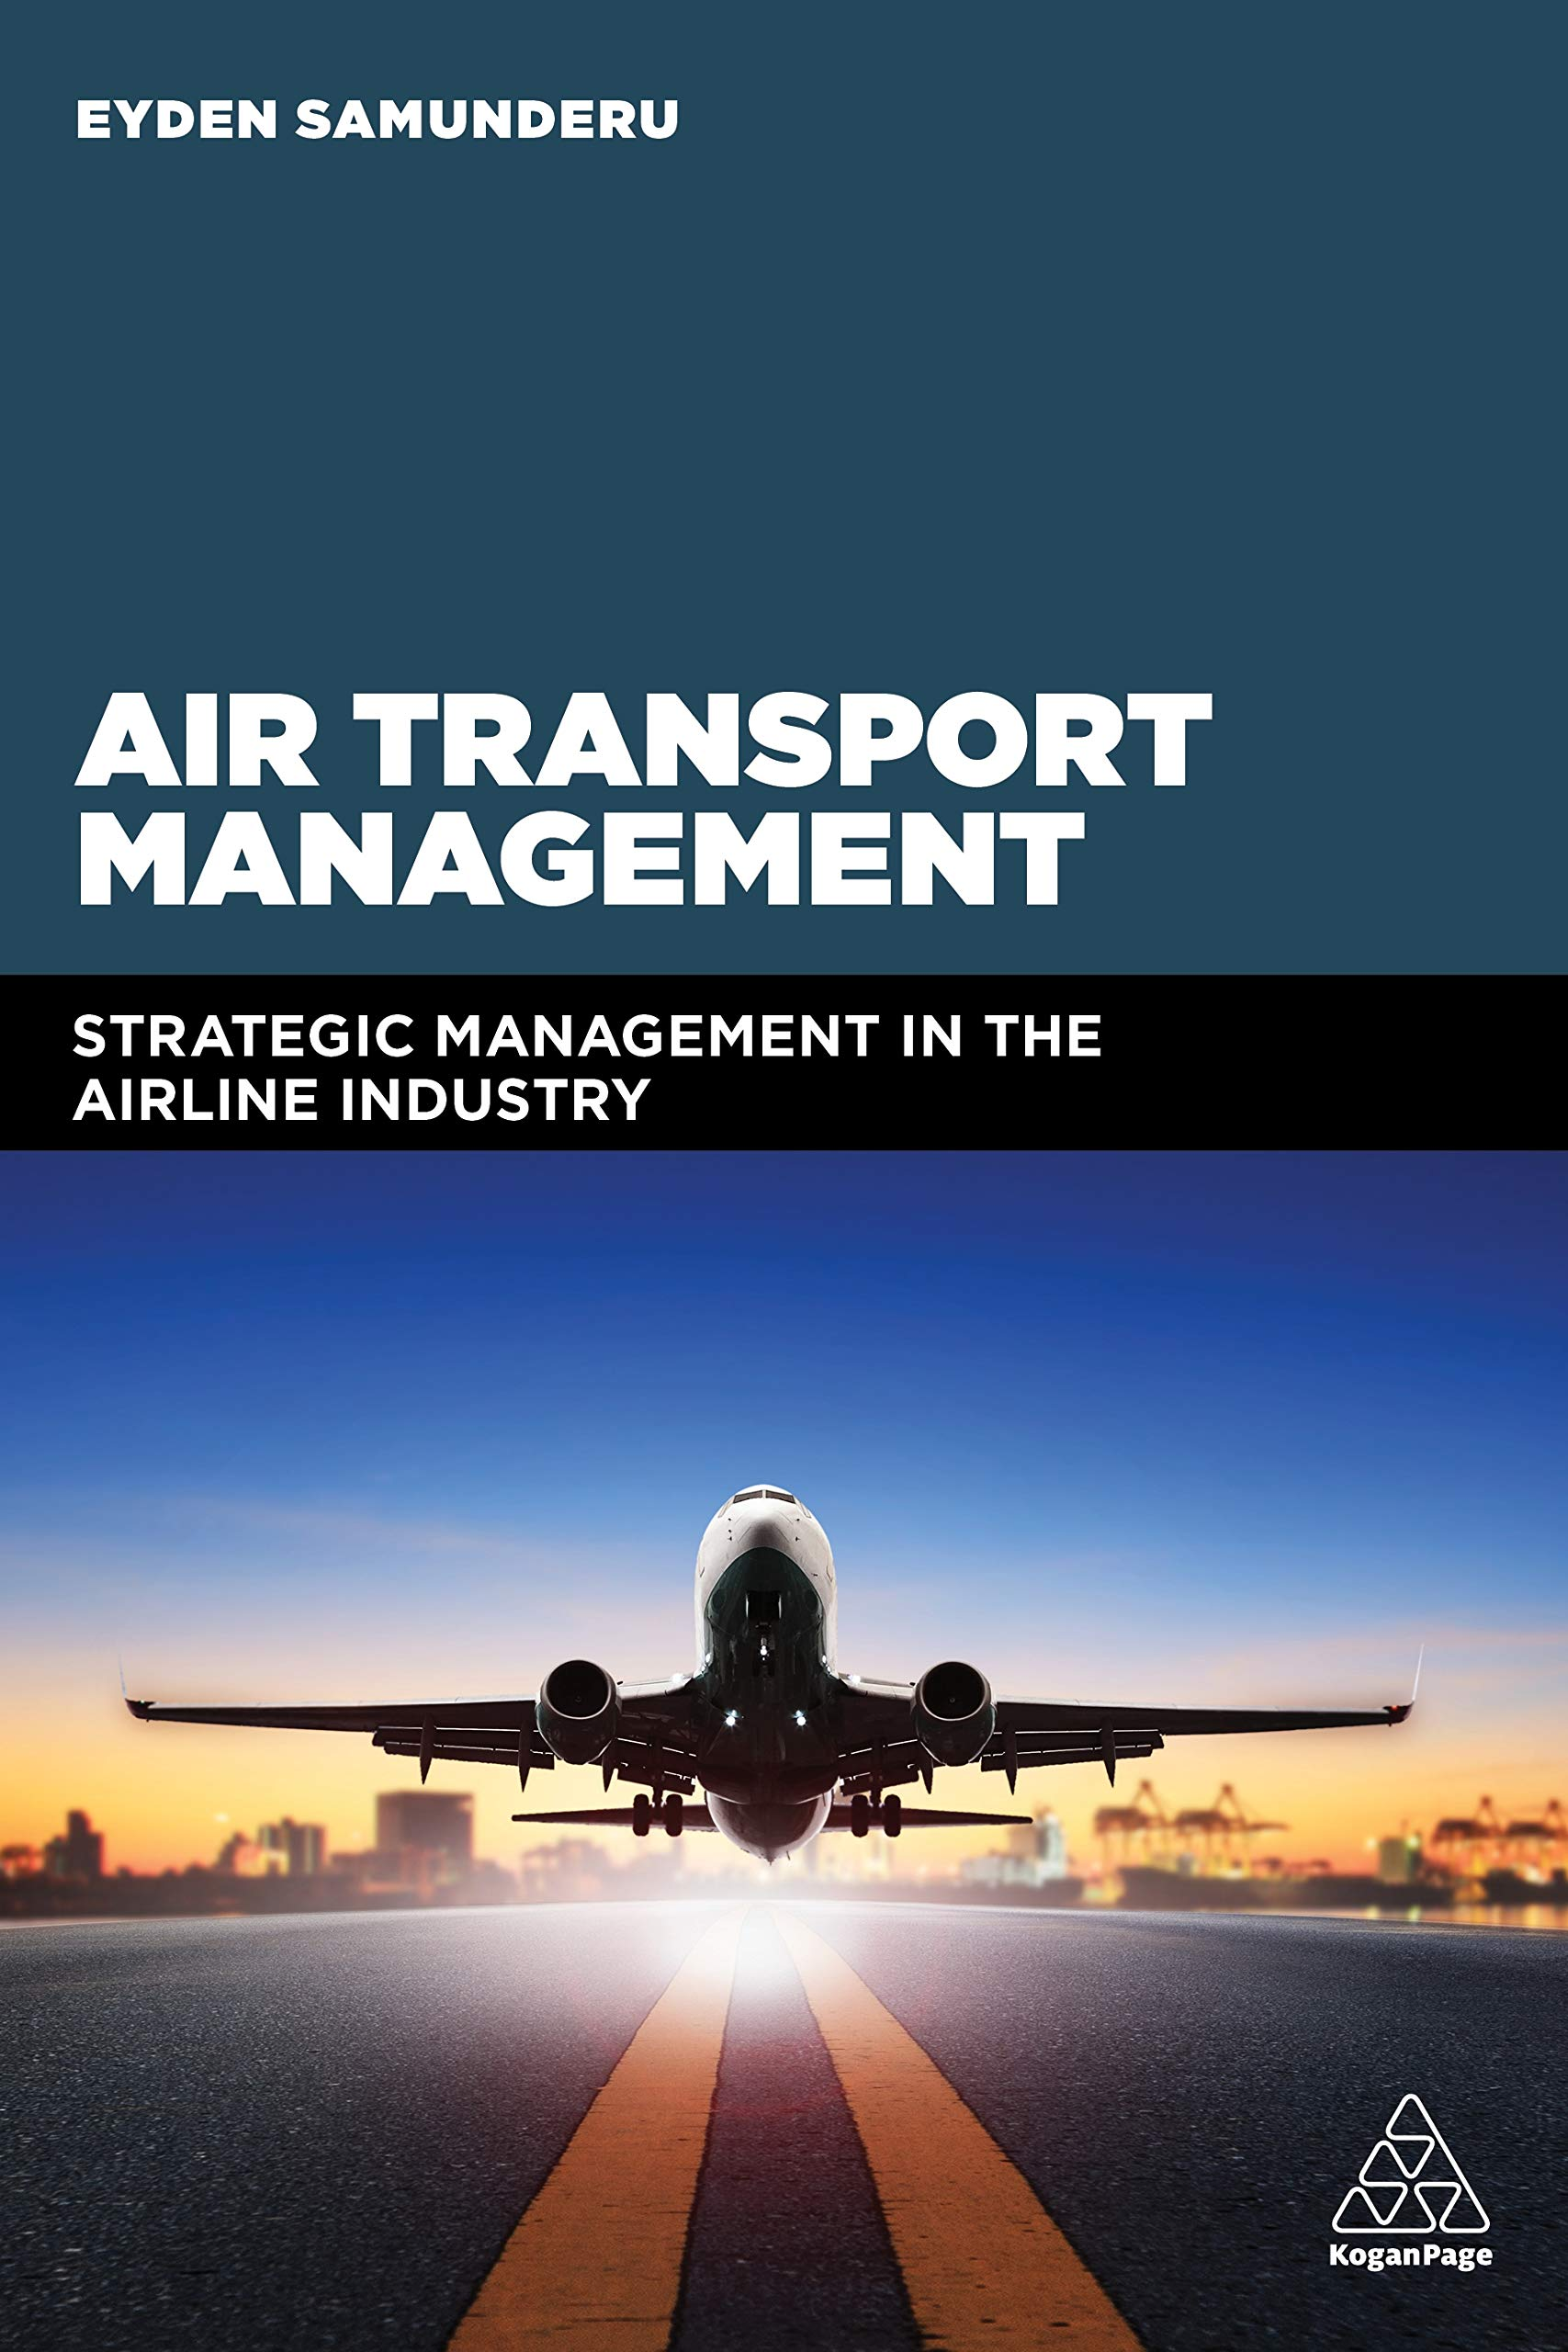 Air Transport Management: Strategic Management in the Airline